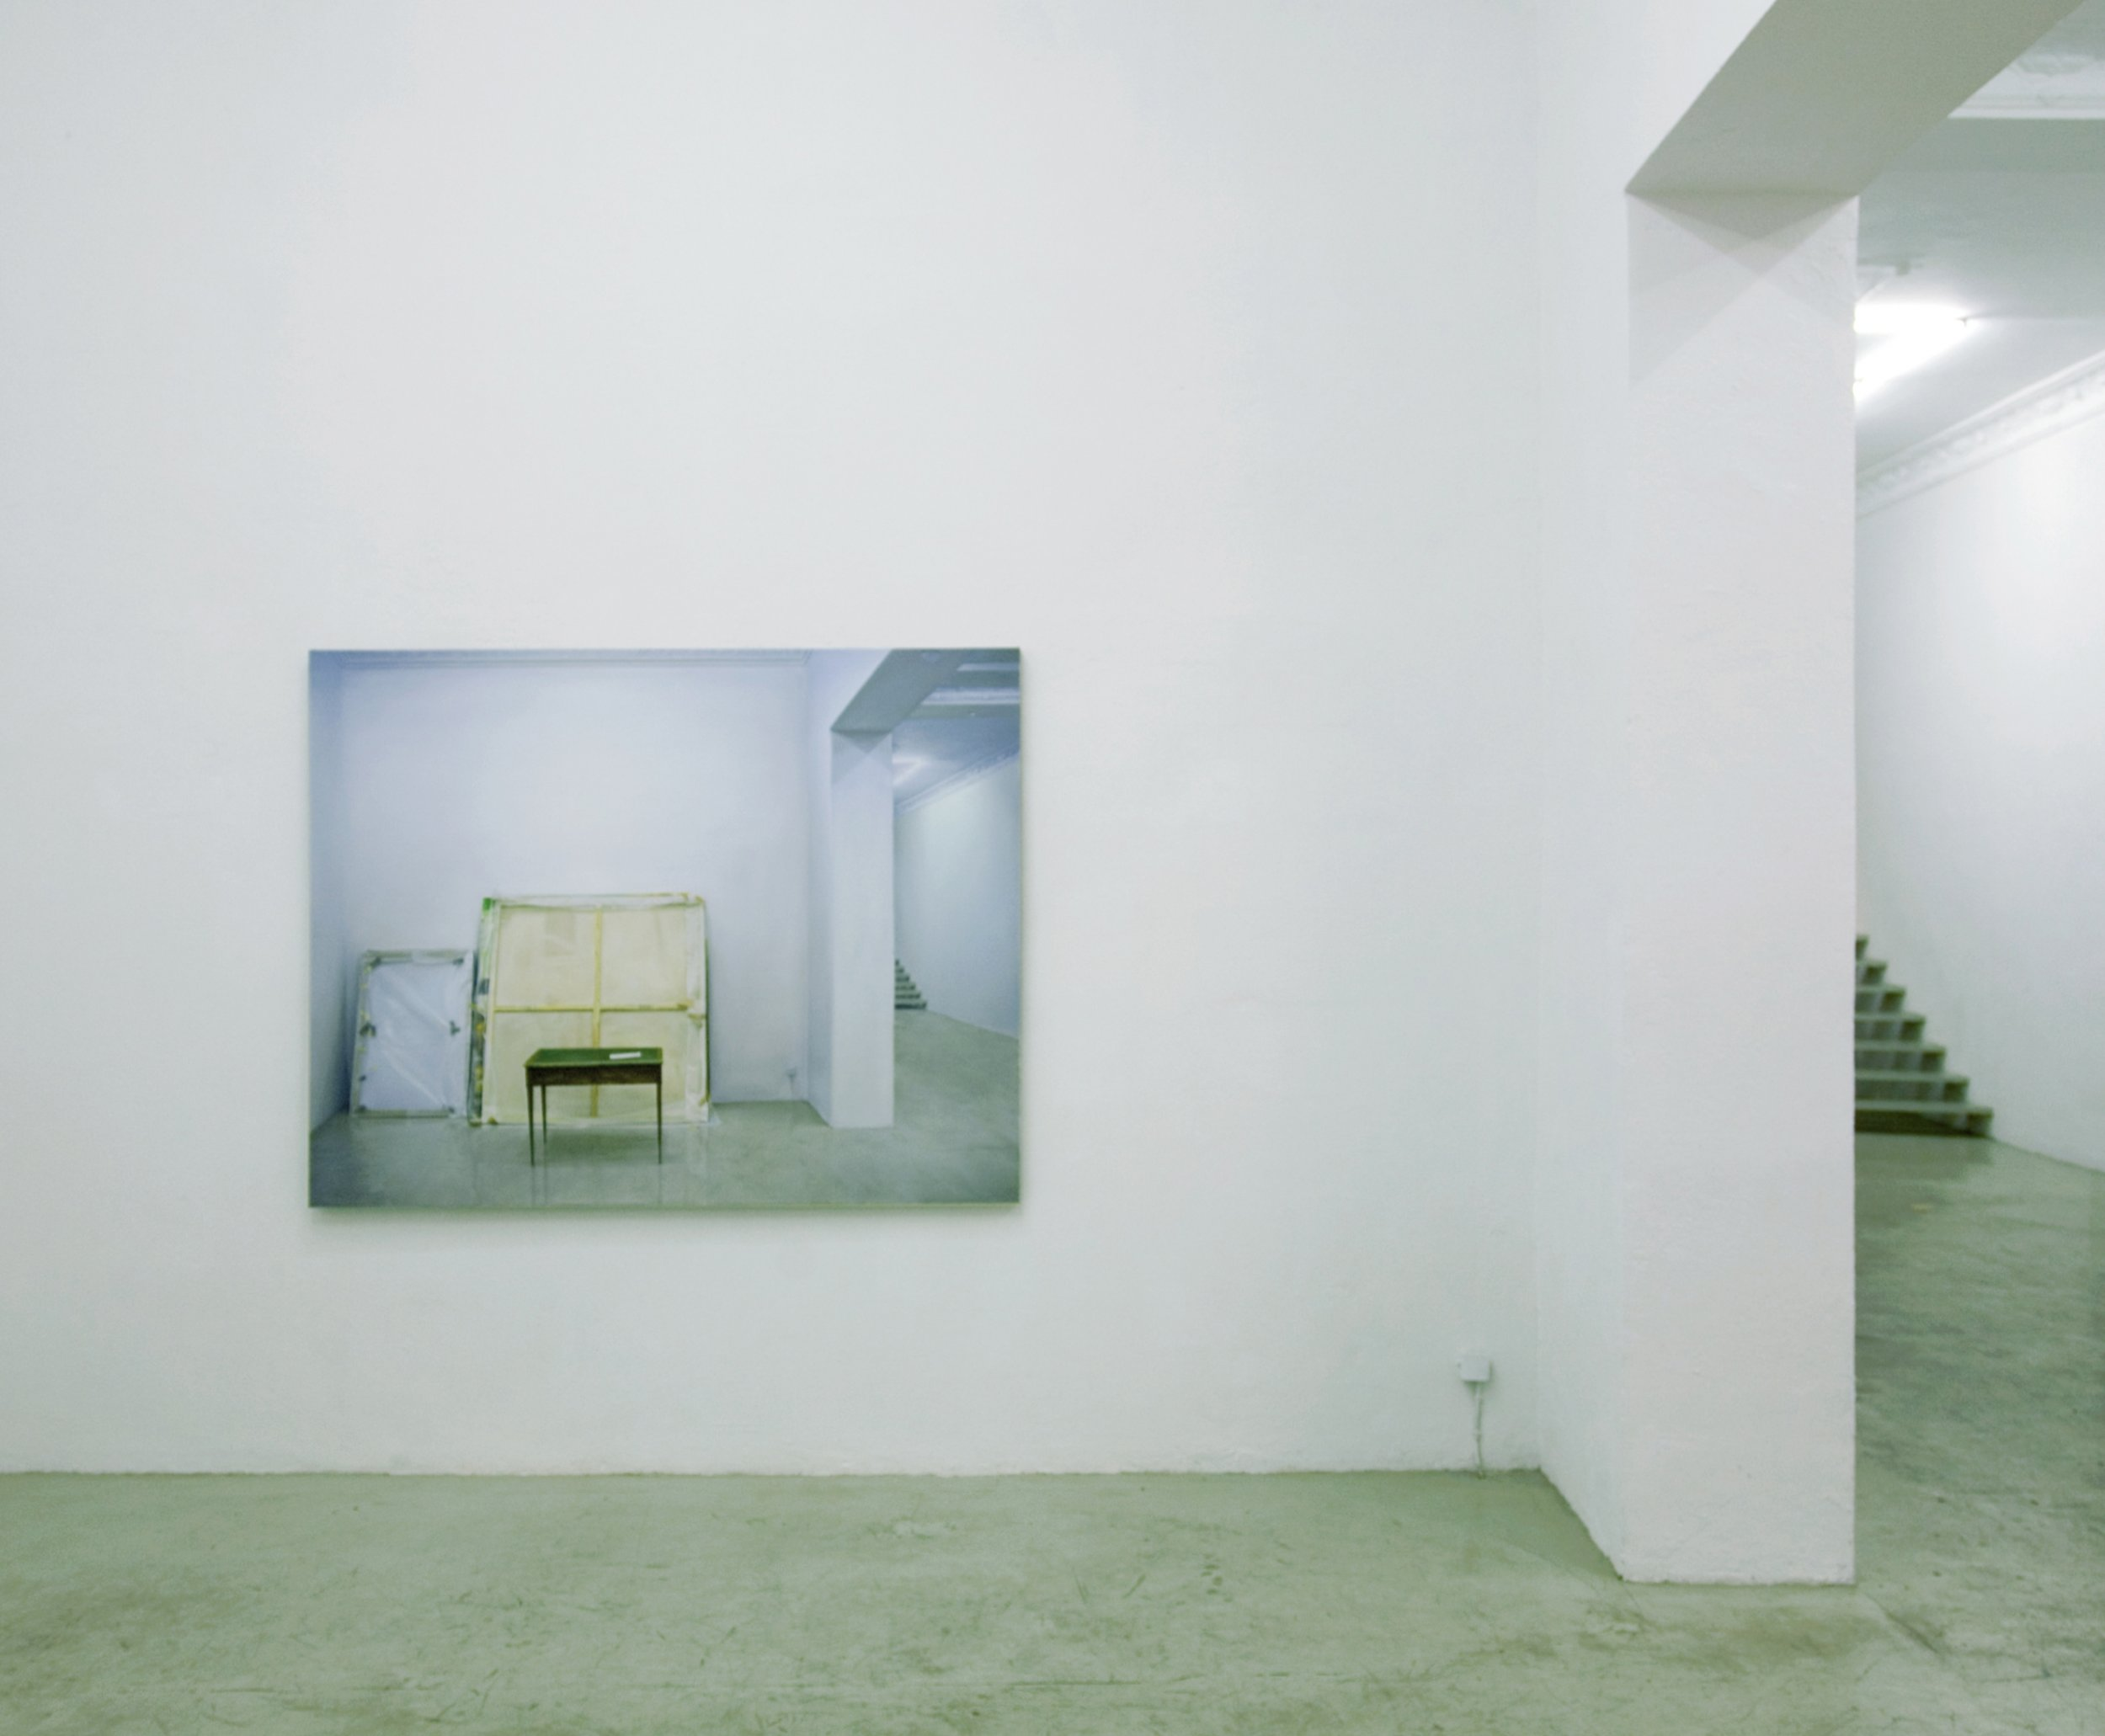 'Gallery (DESK)' instalation view - photo with the painting 'GALLERY (DESK)'